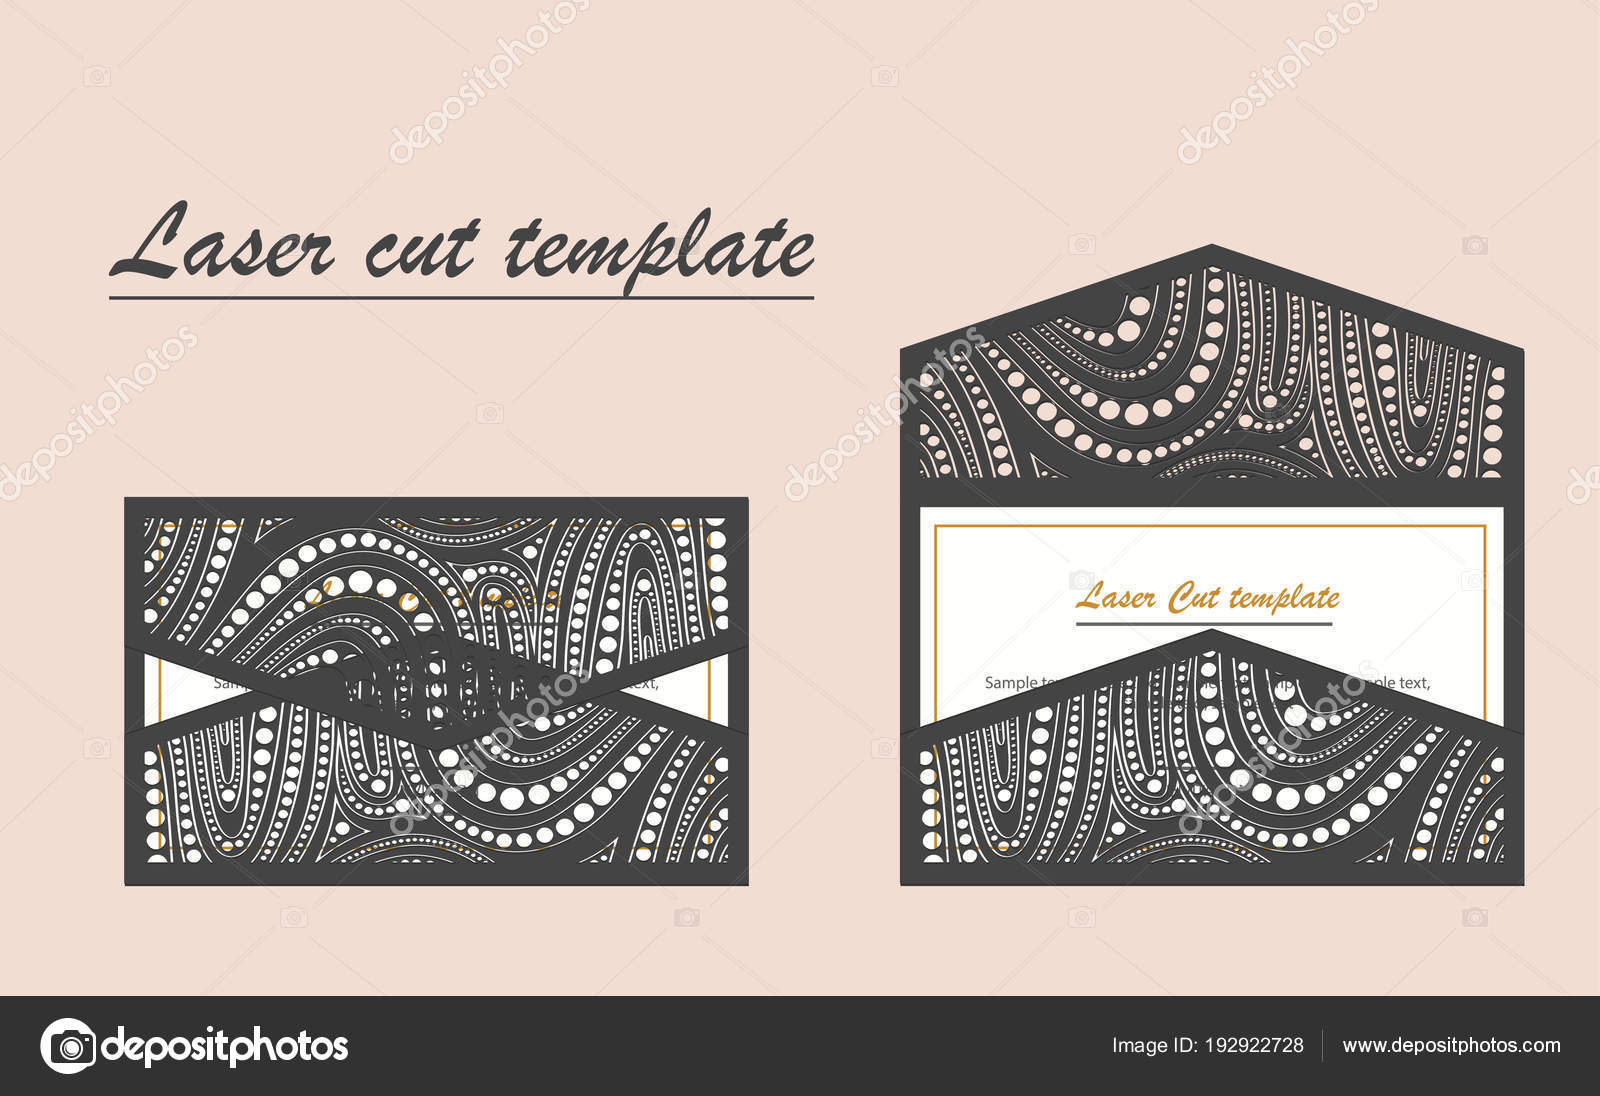 Digital vector file for laser cutting the envelope is an invitation digital vector file for laser cutting swirly ornate wedding invitation envelope vector by yaroslavna2408 stopboris Gallery